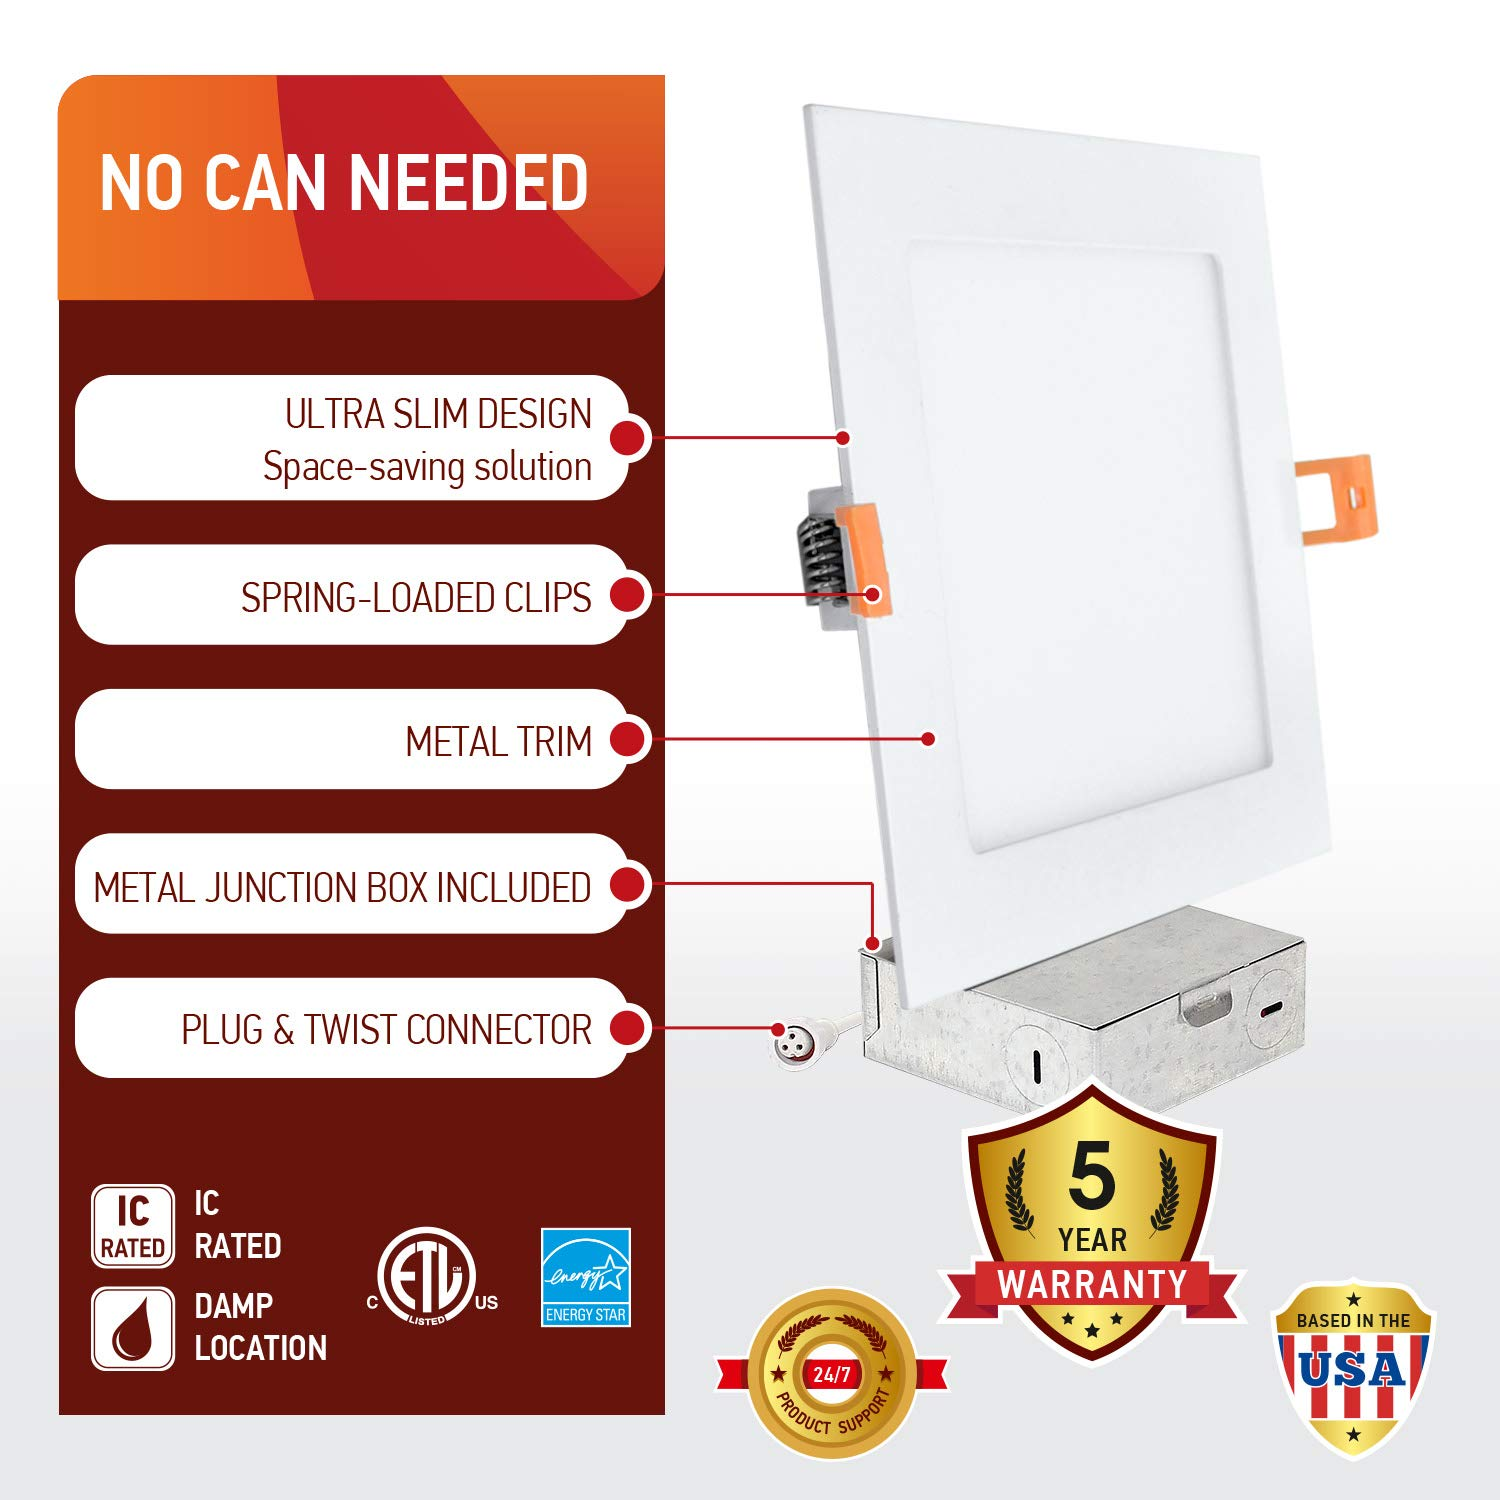 OSTWIN (4 Pack) 6 inch 12W (60 Watt Repl.) IC Rated LED Recessed Low Profile Slim Square Panel Light with Junction Box, Dimmable, 5000K Daylight 840 Lm. No Can Needed ETL & Energy Star Listed by OSTWIN (Image #3)